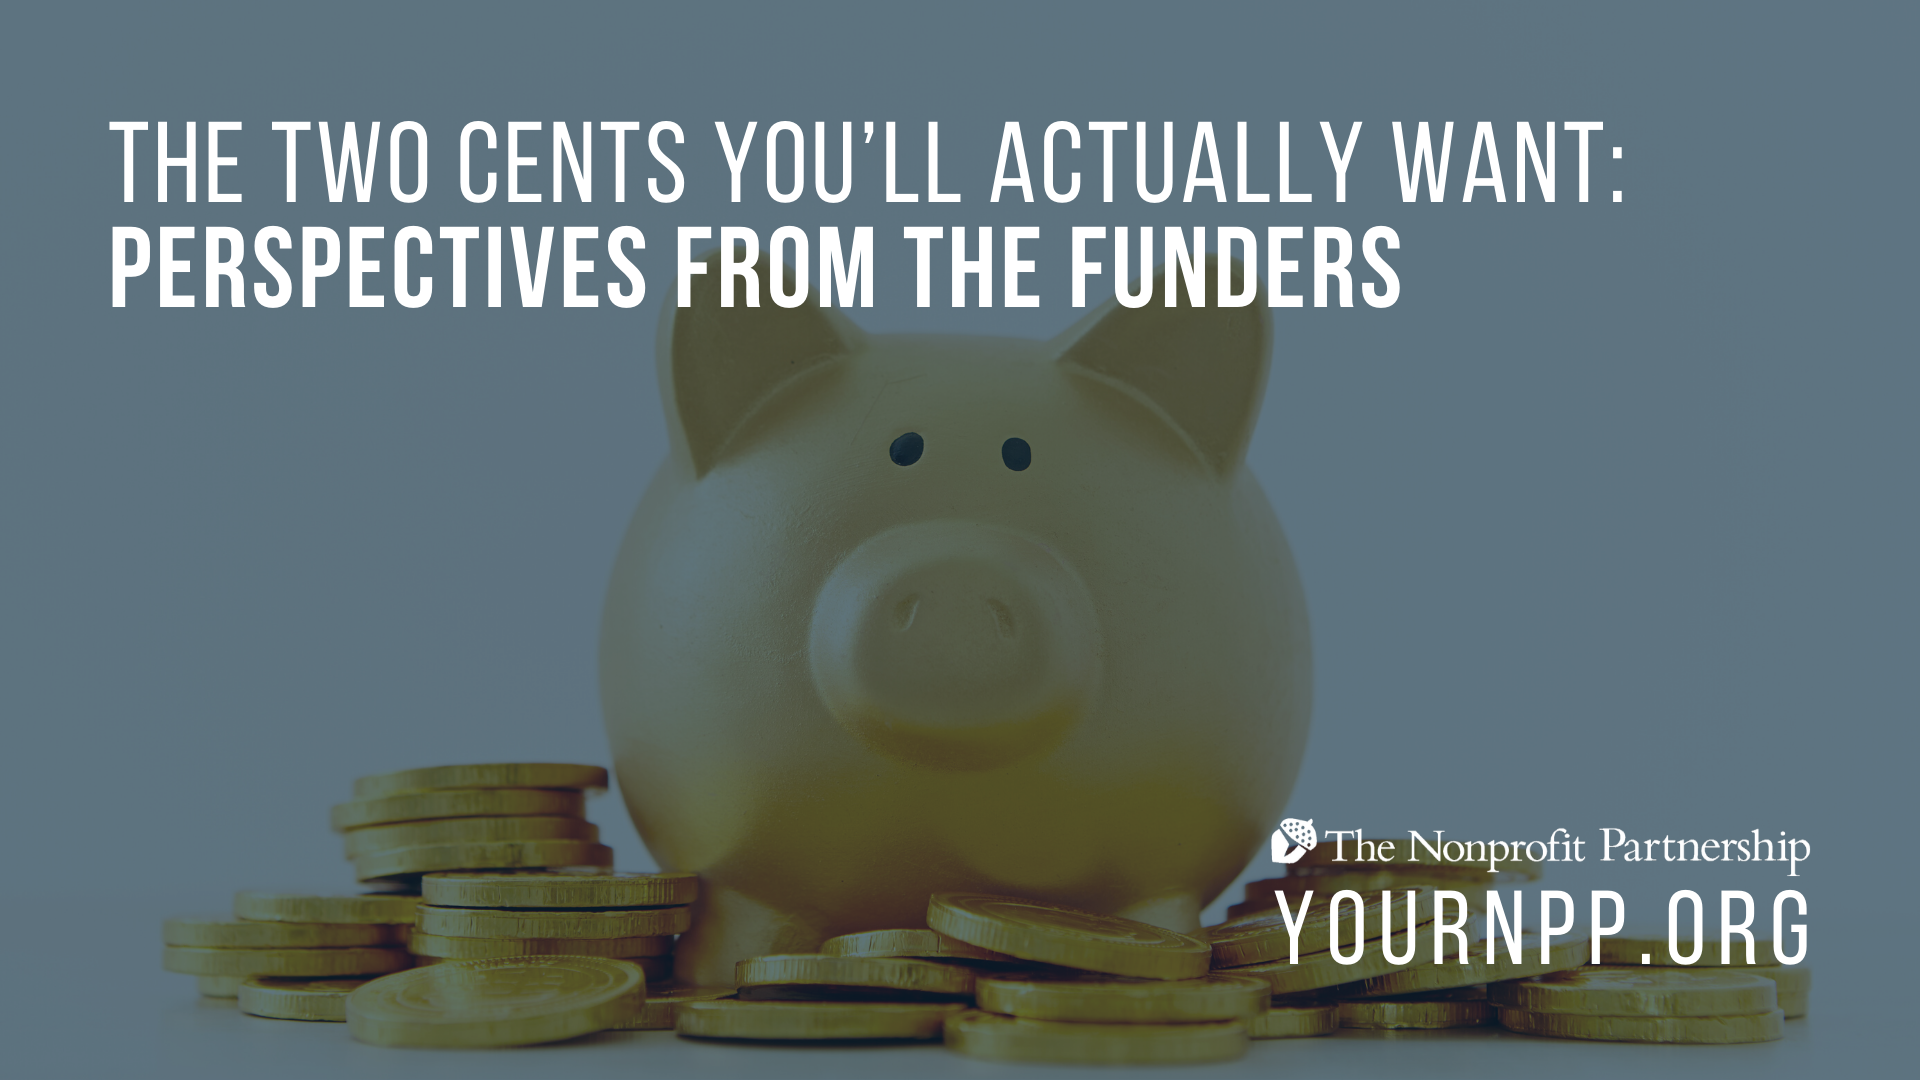 The Two Cents You'll Actually WANT: Perspectives from the Funders